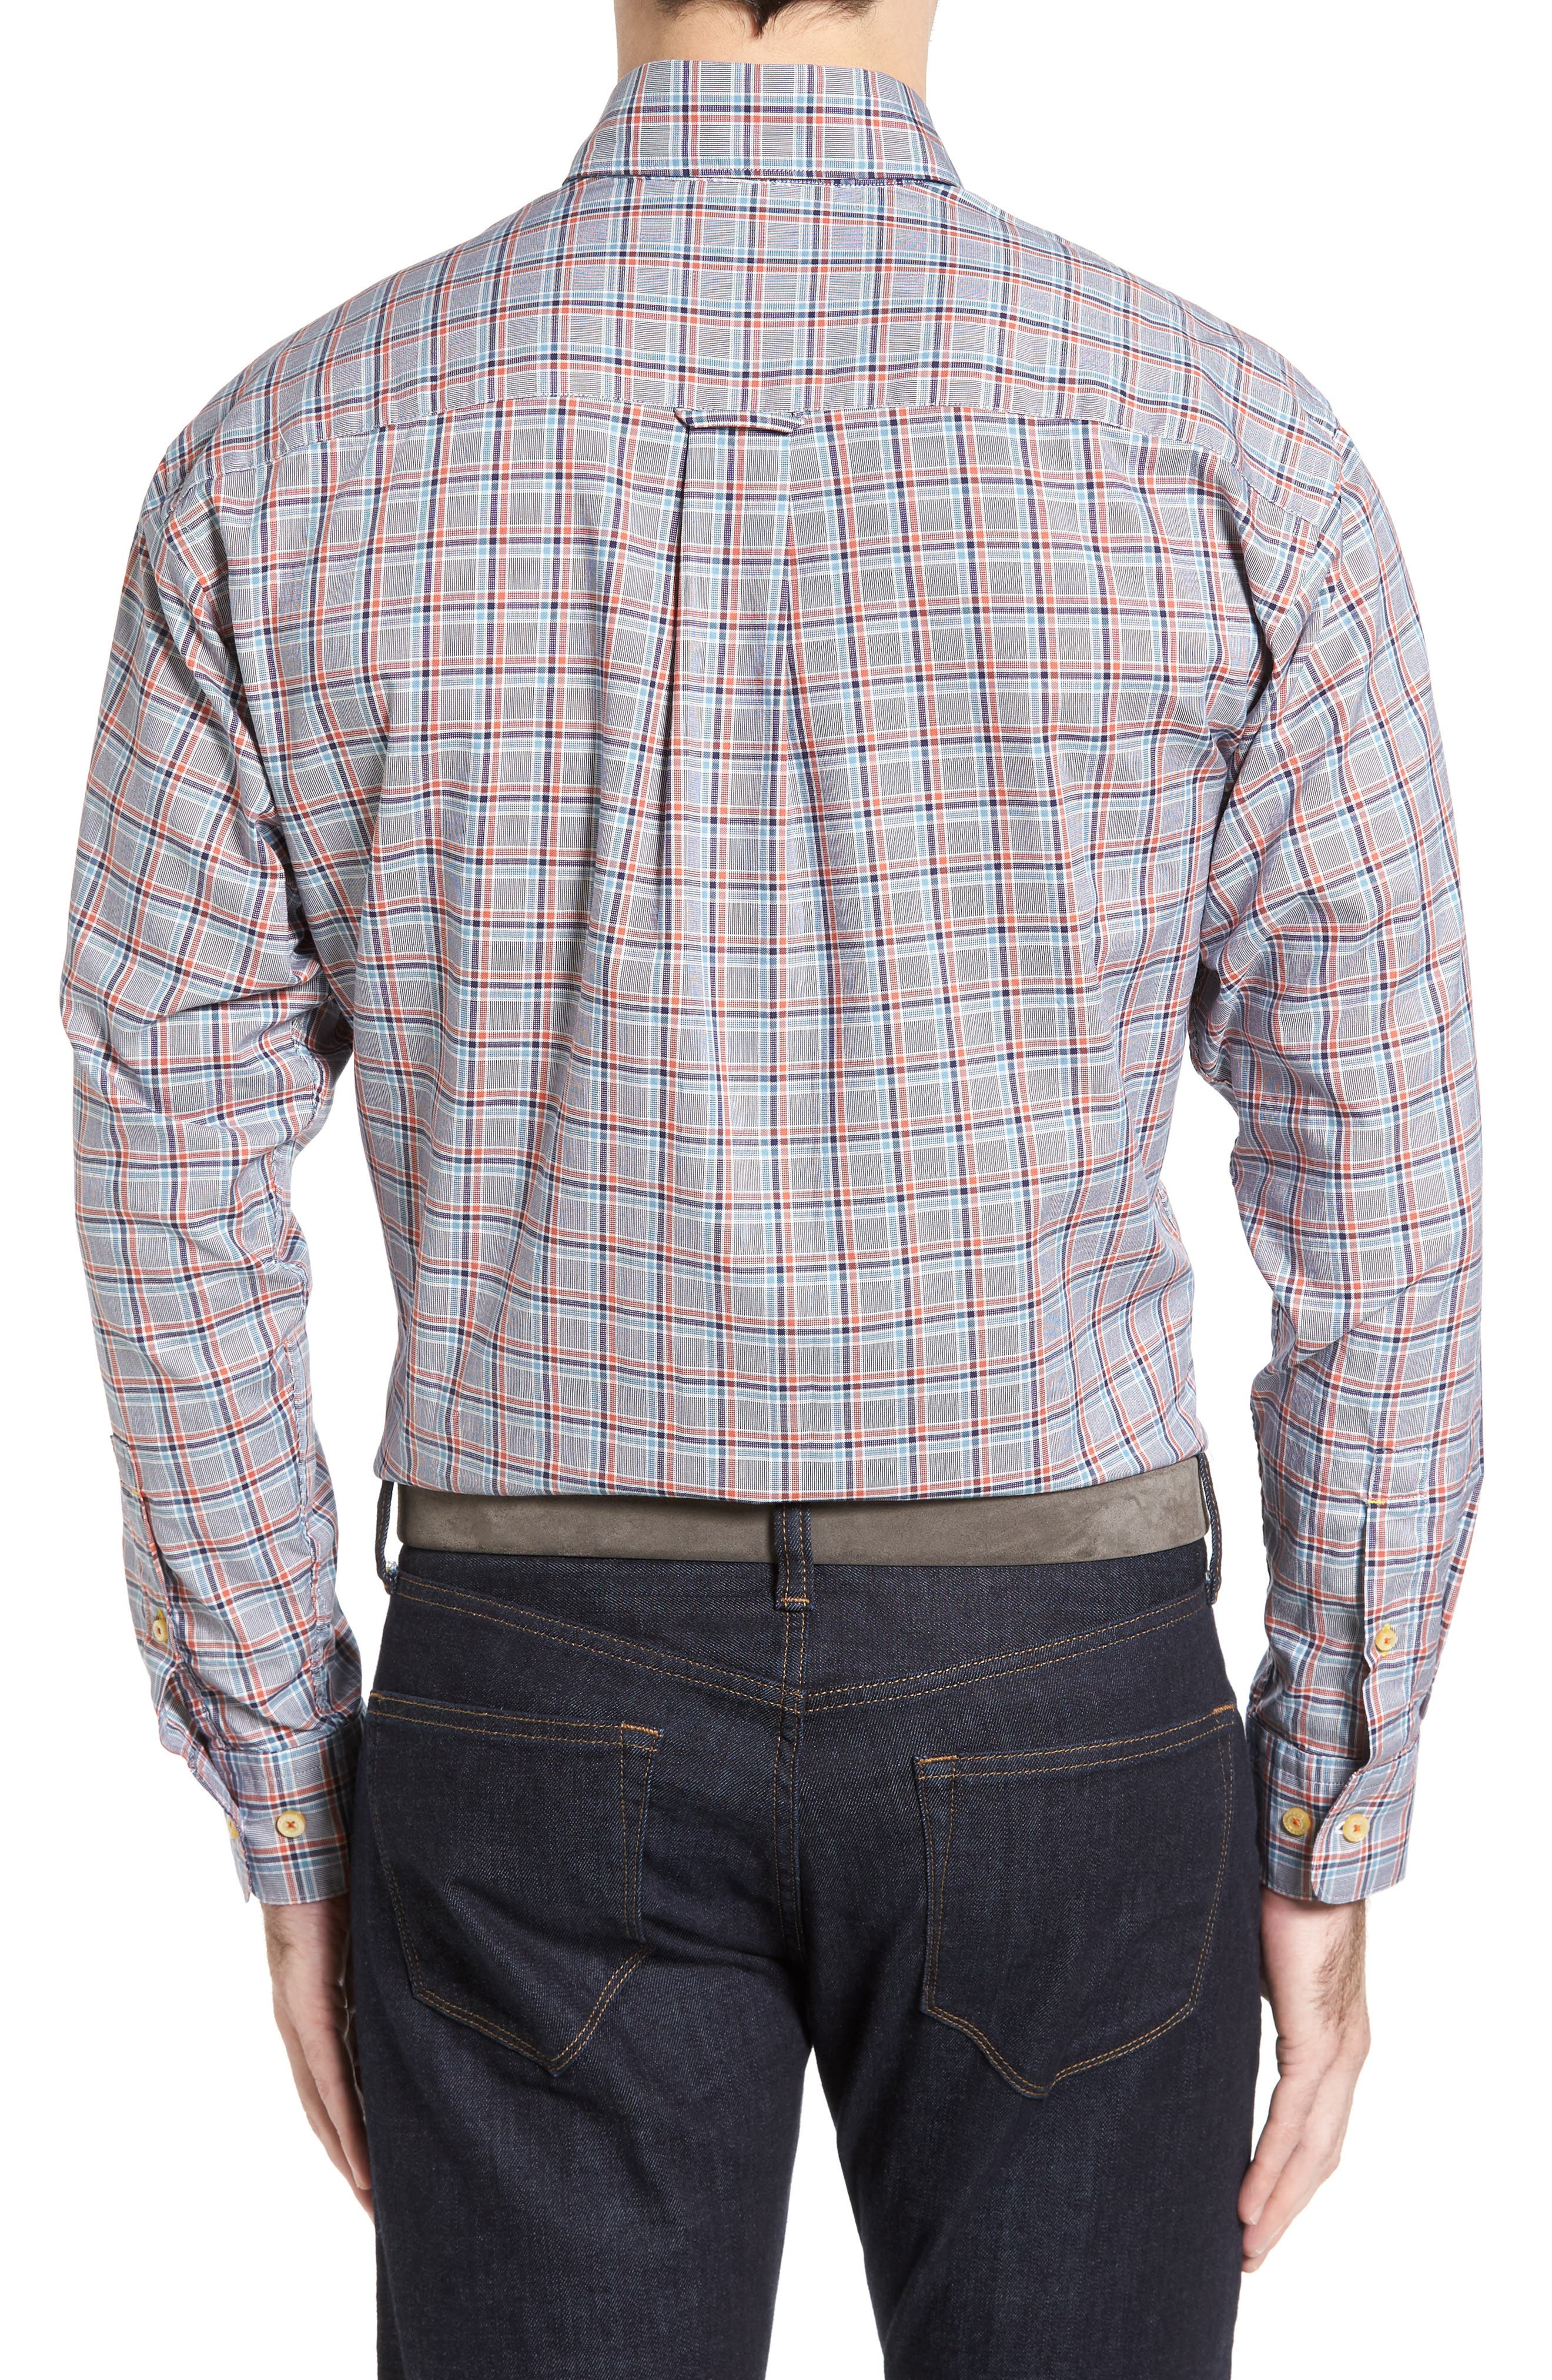 Anderson Classic Fit Plaid Oxford Sport Shirt,                             Alternate thumbnail 2, color,                             401